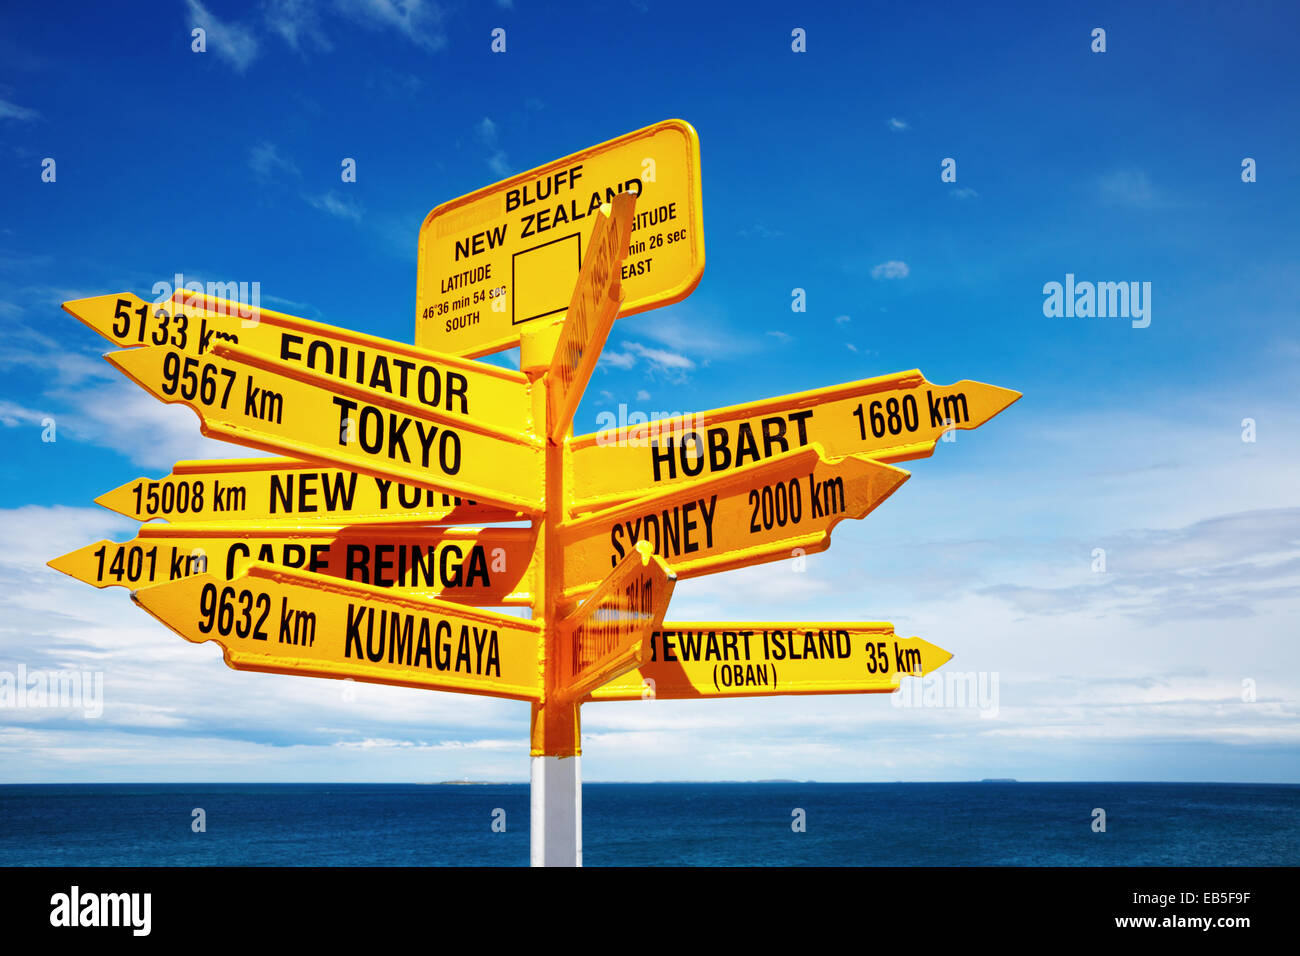 Signpost in the Stirling Point, Bluff, New Zealand.  Most southern mainland point of New Zealand - Stock Image